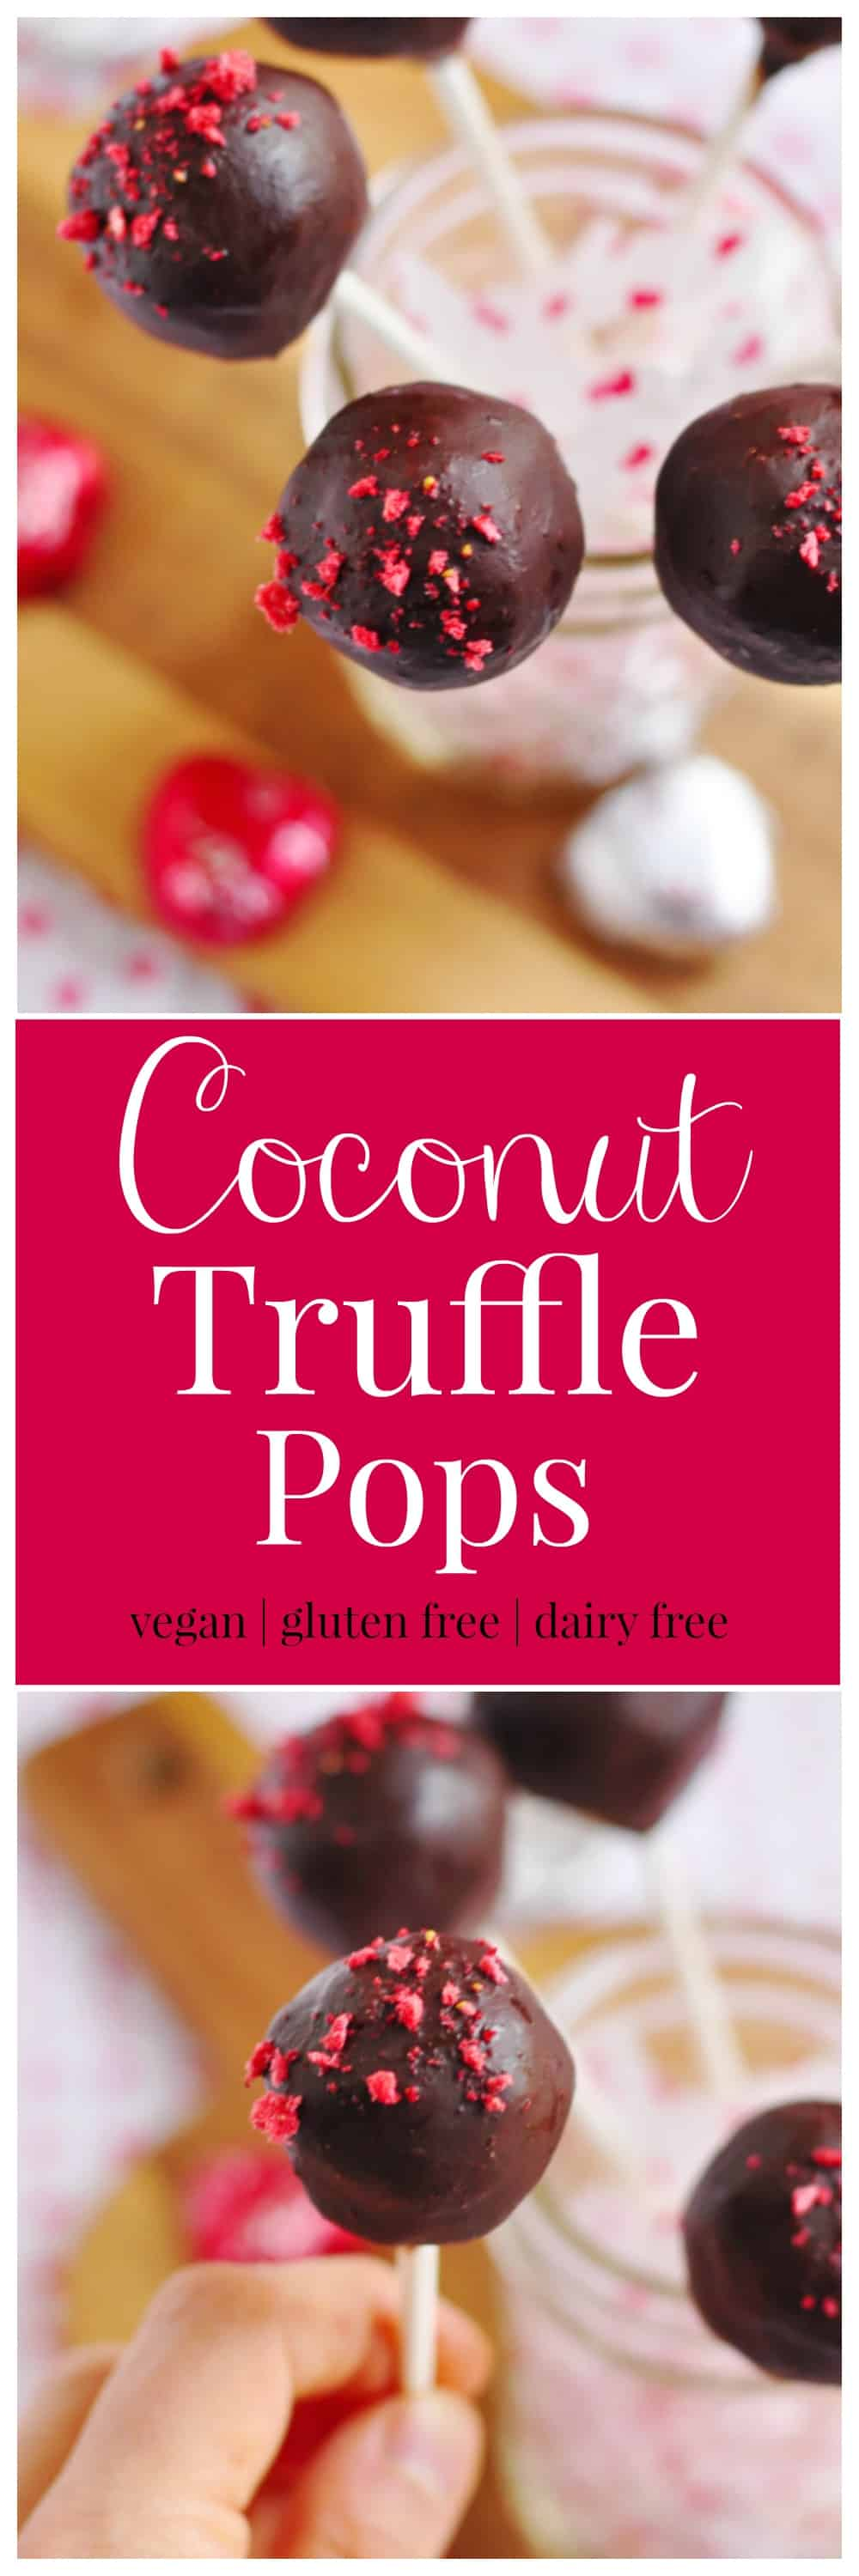 Coconut Truffle Pops. Be Whole. Be You.